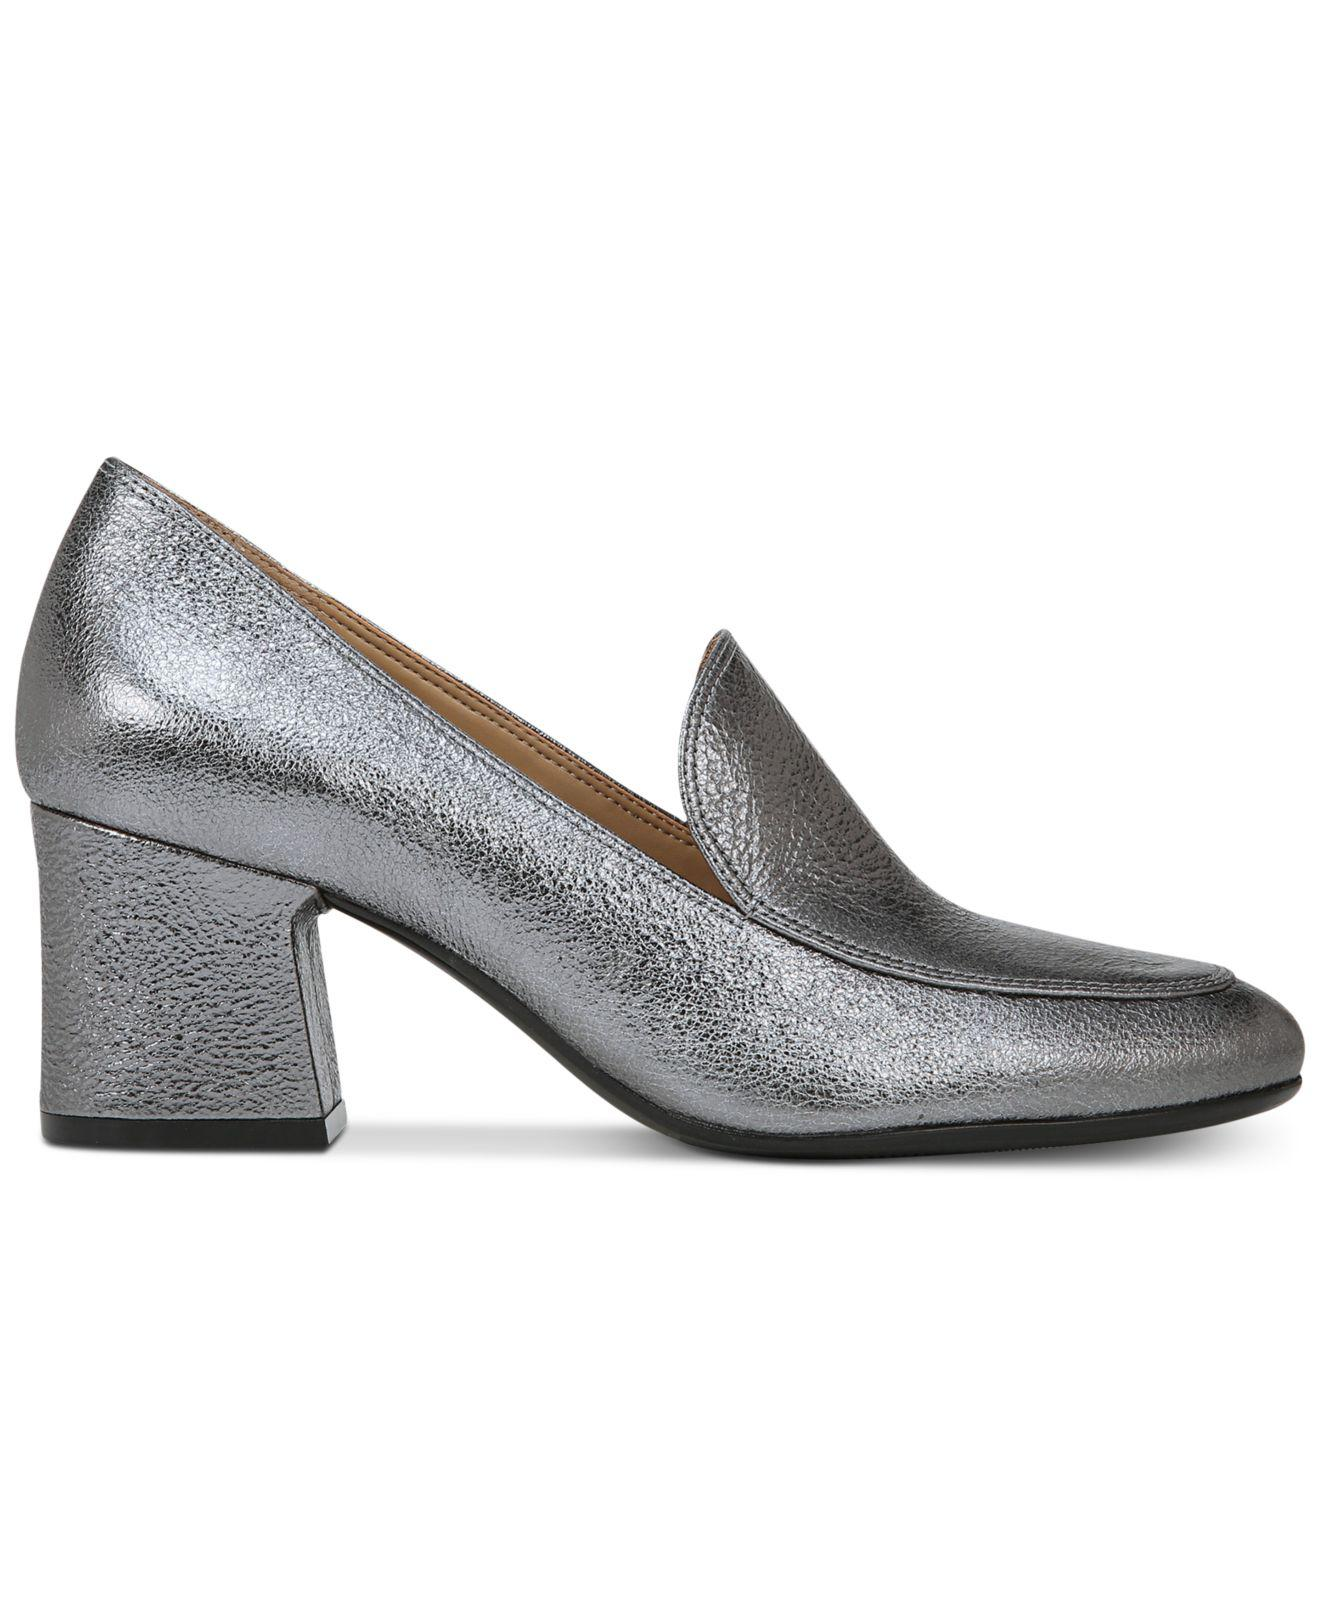 1c293caf348a Lyst - Naturalizer Dany Pumps in Gray